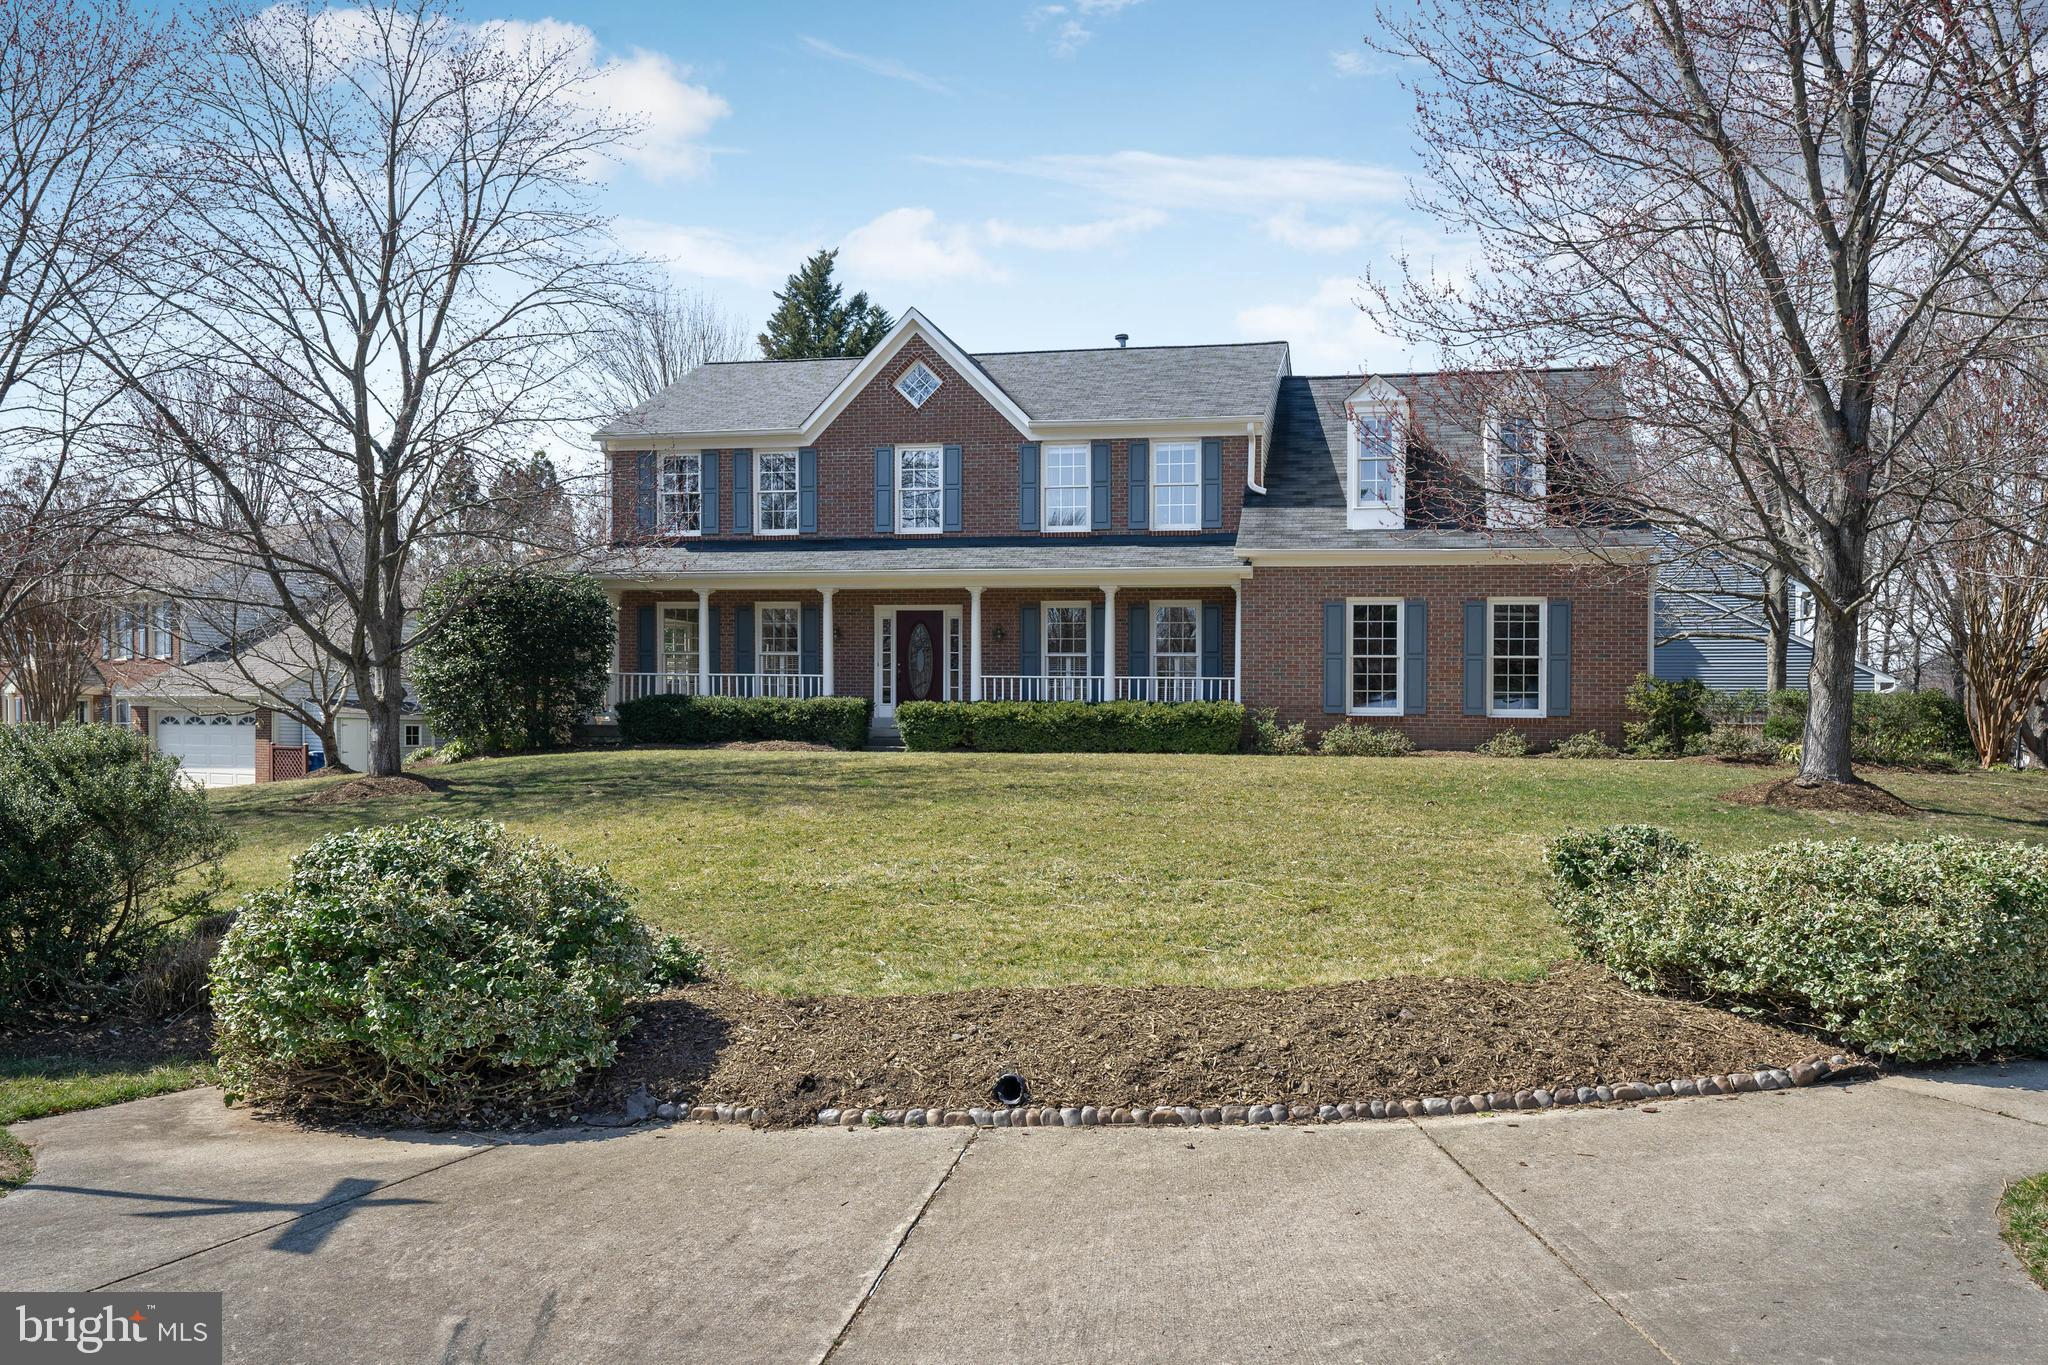 OPEN SUNDAY 1-4PM! Just listed in desirable Manors at Mount Vernon community! Curb appeal abounds with distinctive front porch. Exceptionally bright and open floor plan highlighted by updated kitchen opening to spacious family room with soaring cathedral ceiling. Other features include: 4 Bedrooms, 3.5 Baths, main level office/library, upgraded trim detail, and two car garage. Near Stratford Landing School. Unique combination of size, location, & attractive price in premier location!